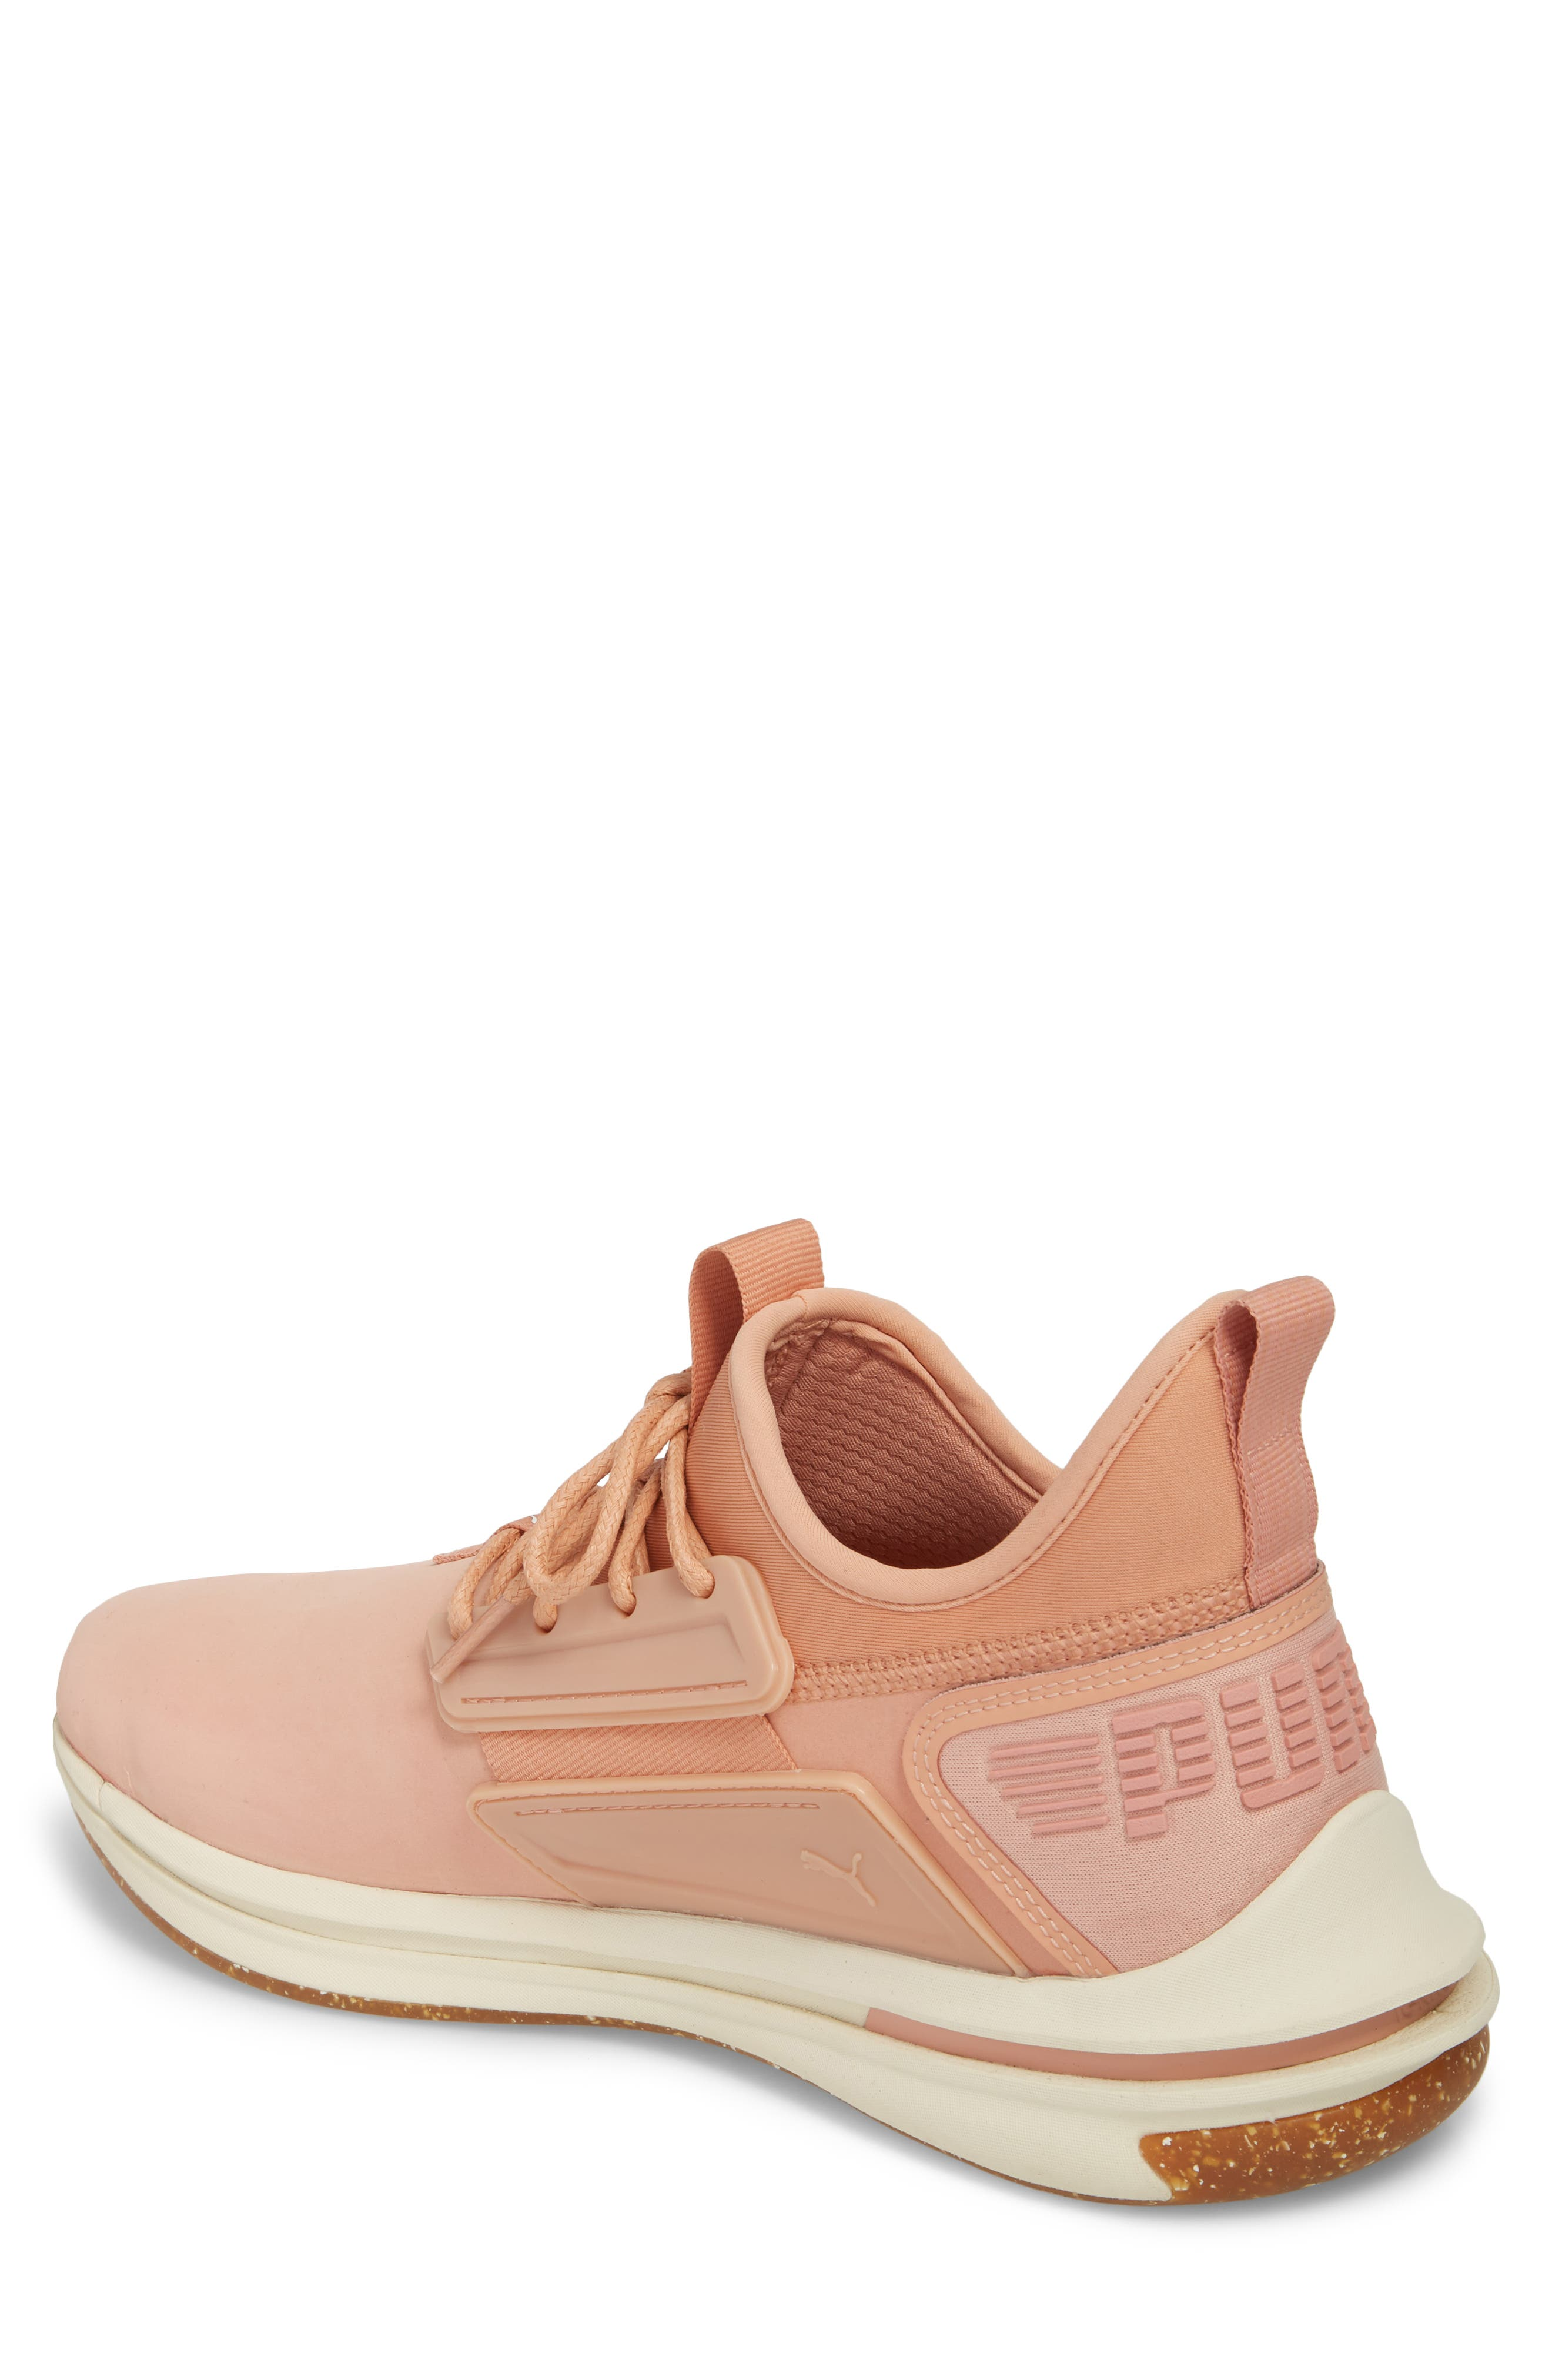 IGNITE Limitless SR Nature Sneaker,                             Alternate thumbnail 2, color,                             Muted Clay Leather/ Suede